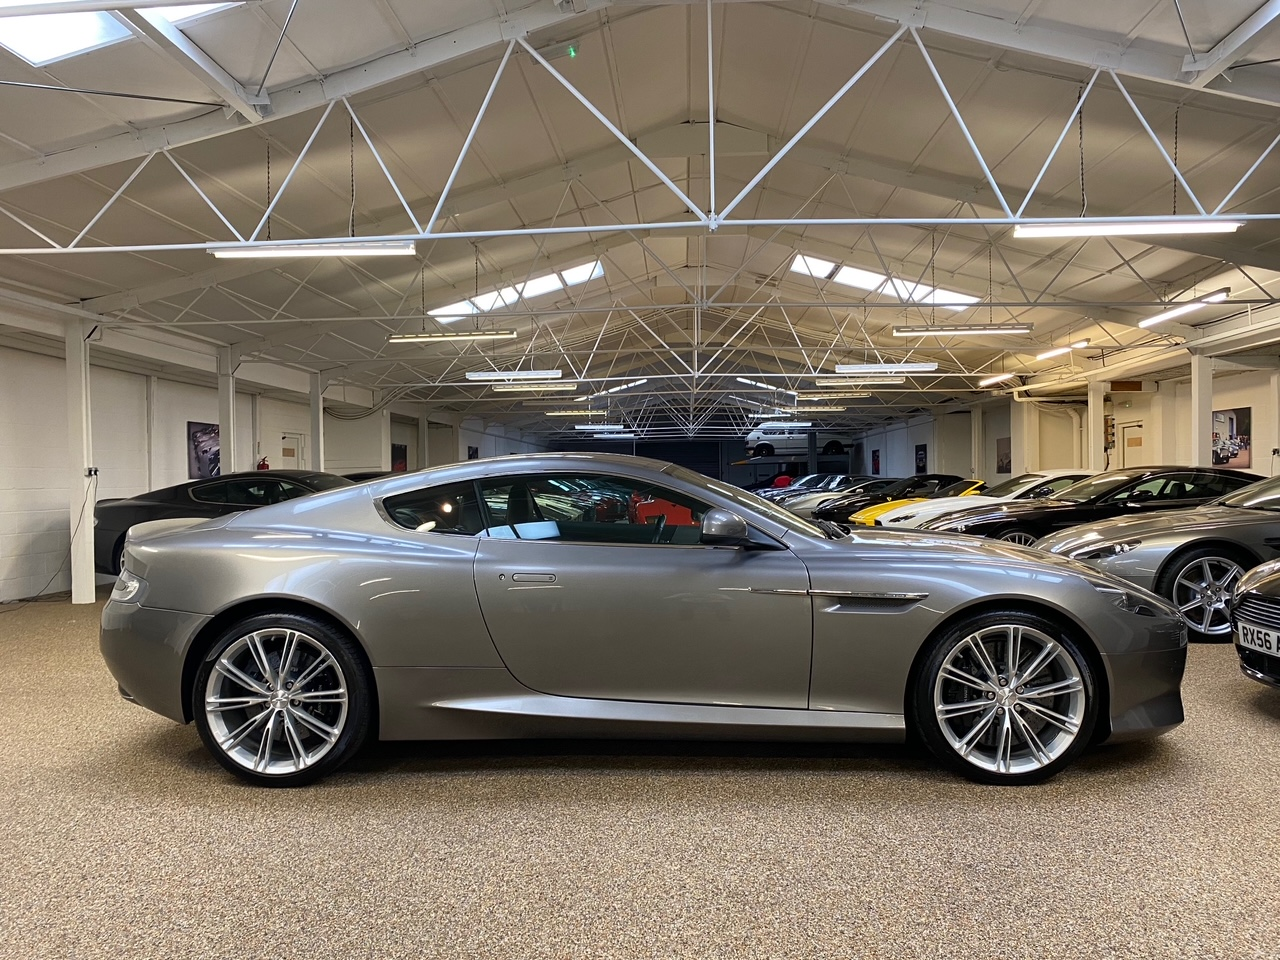 Used DB9 Coupe for Sale